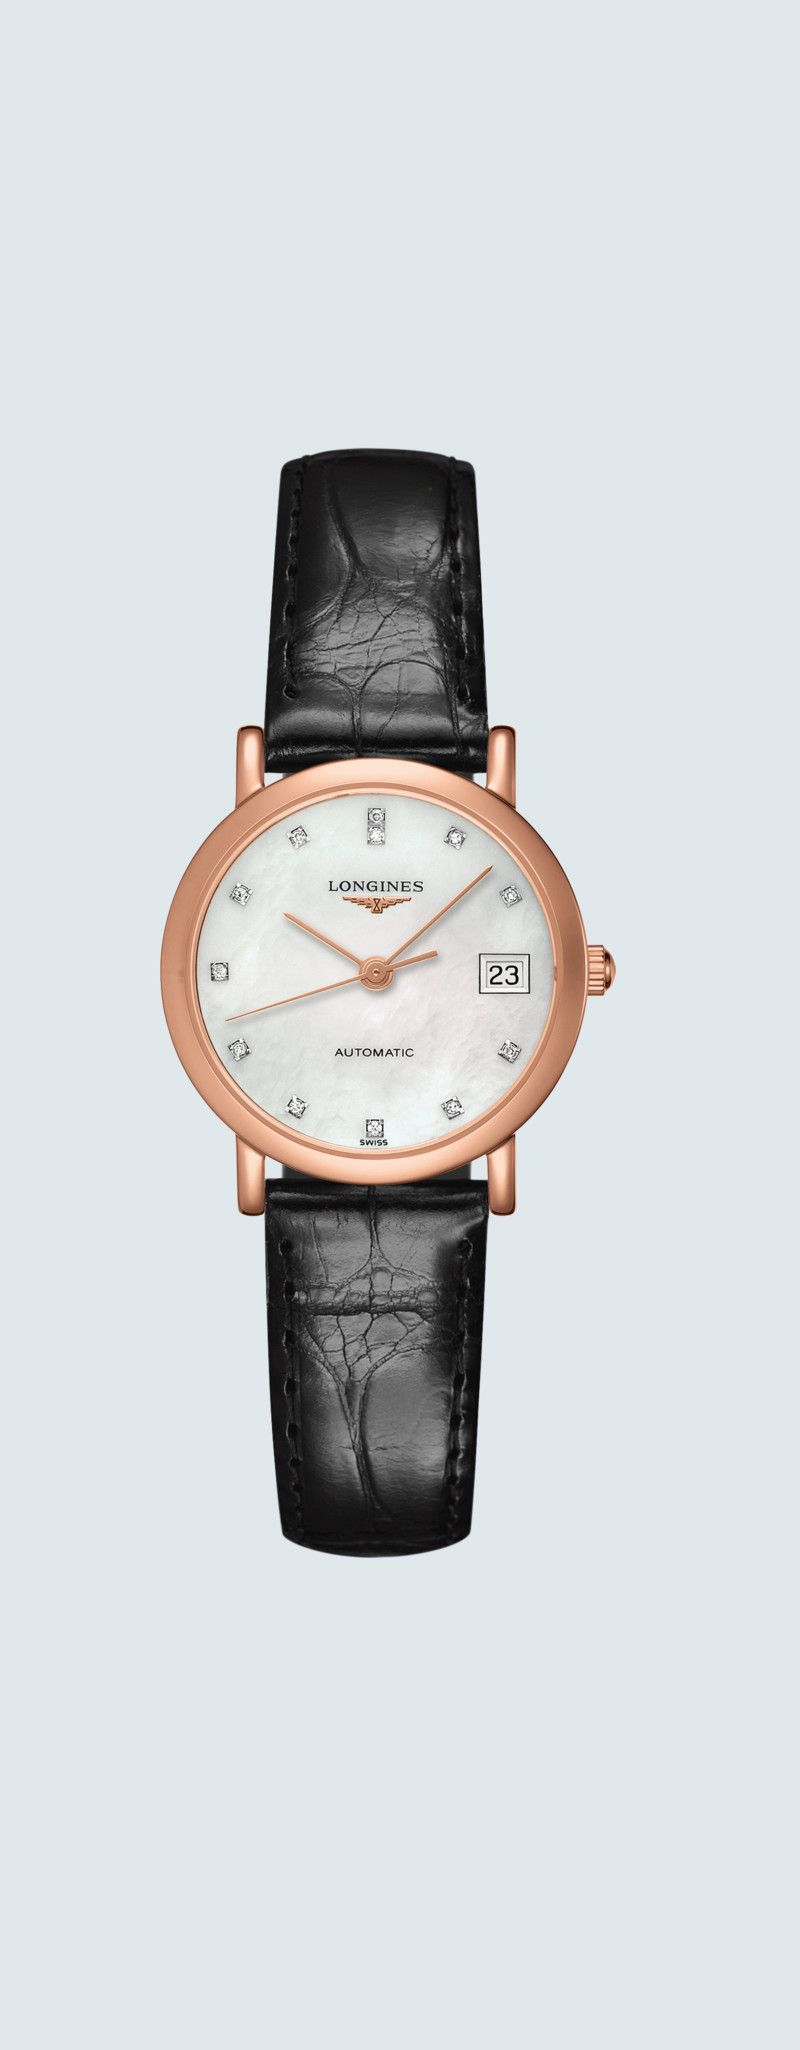 27.20 mm Or rose 18 carats case with Nacre blanche dial and Bracelet Alligator Noir strap - case zo